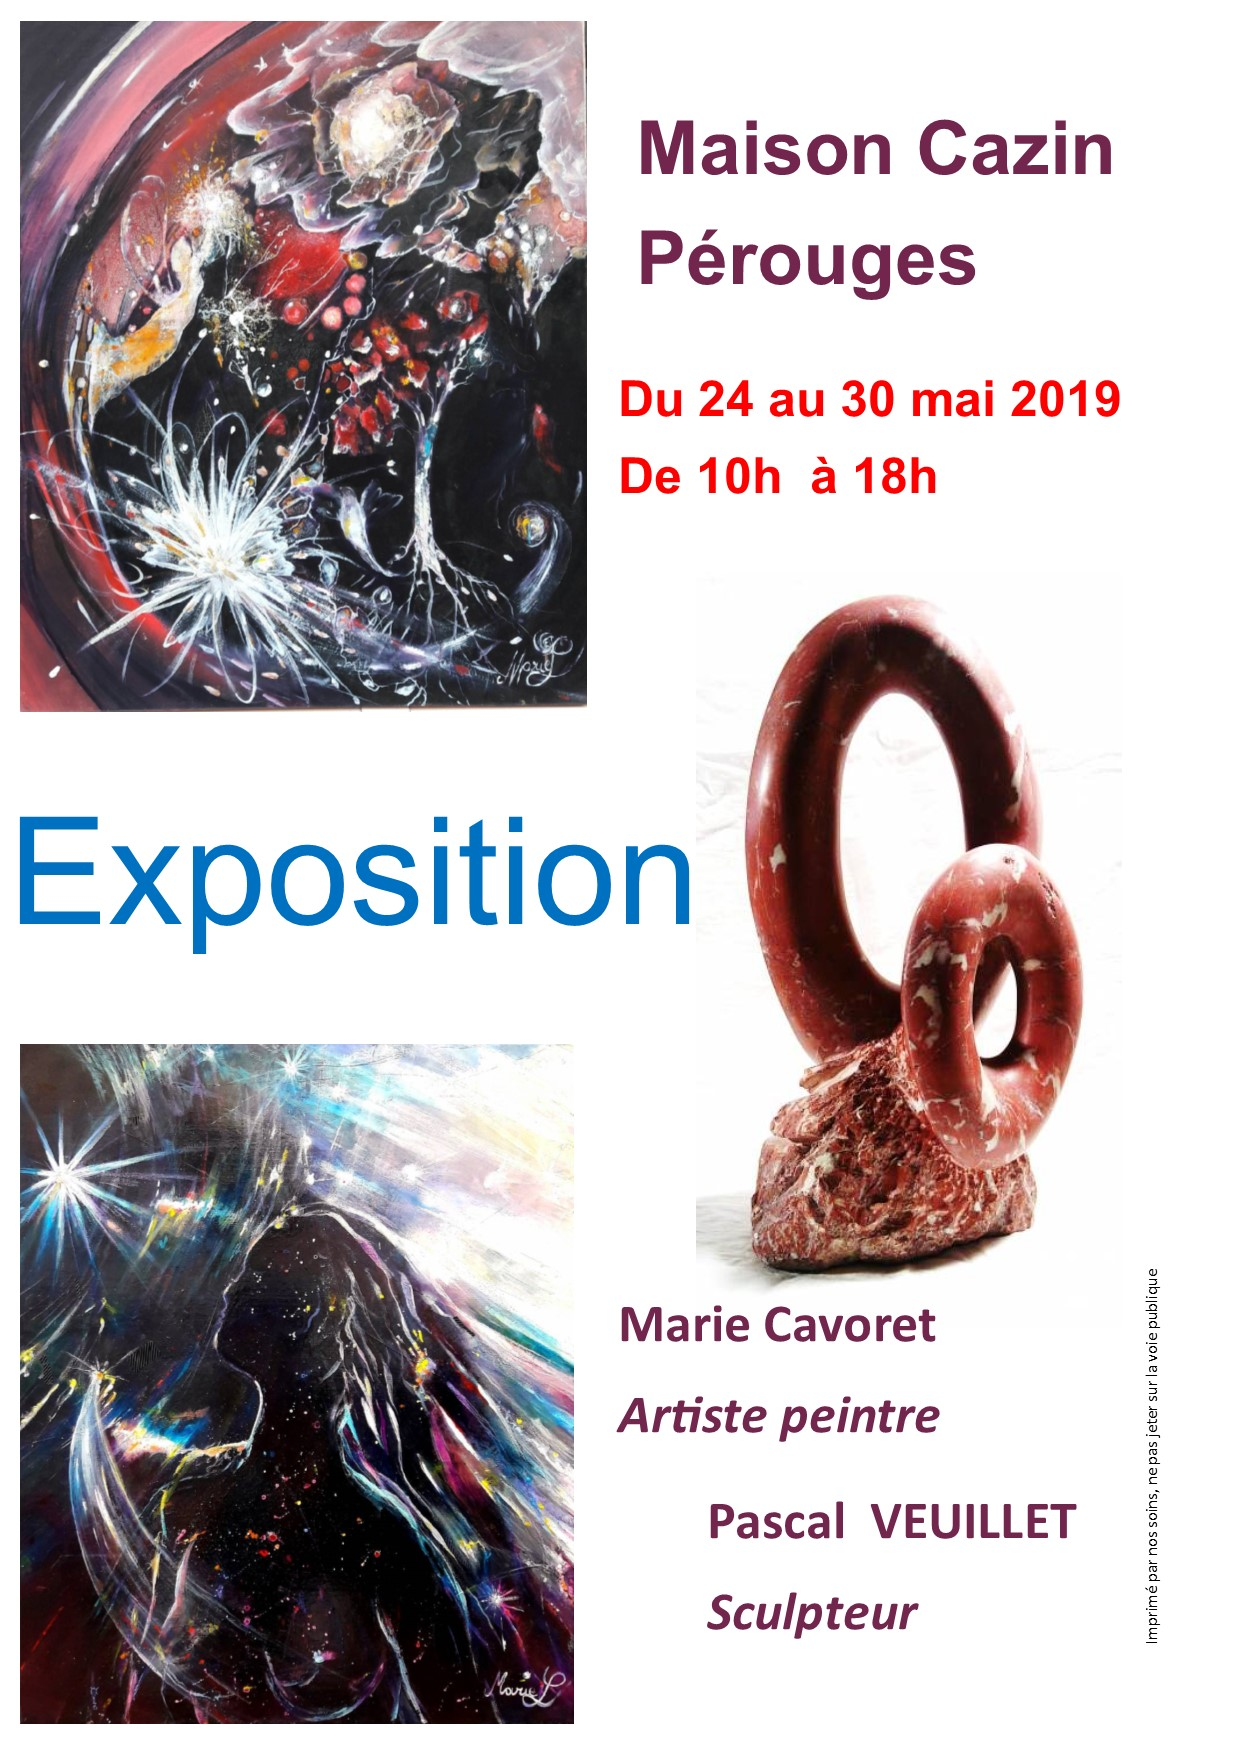 Pérouges exposition affiche  mai 2019.jpg